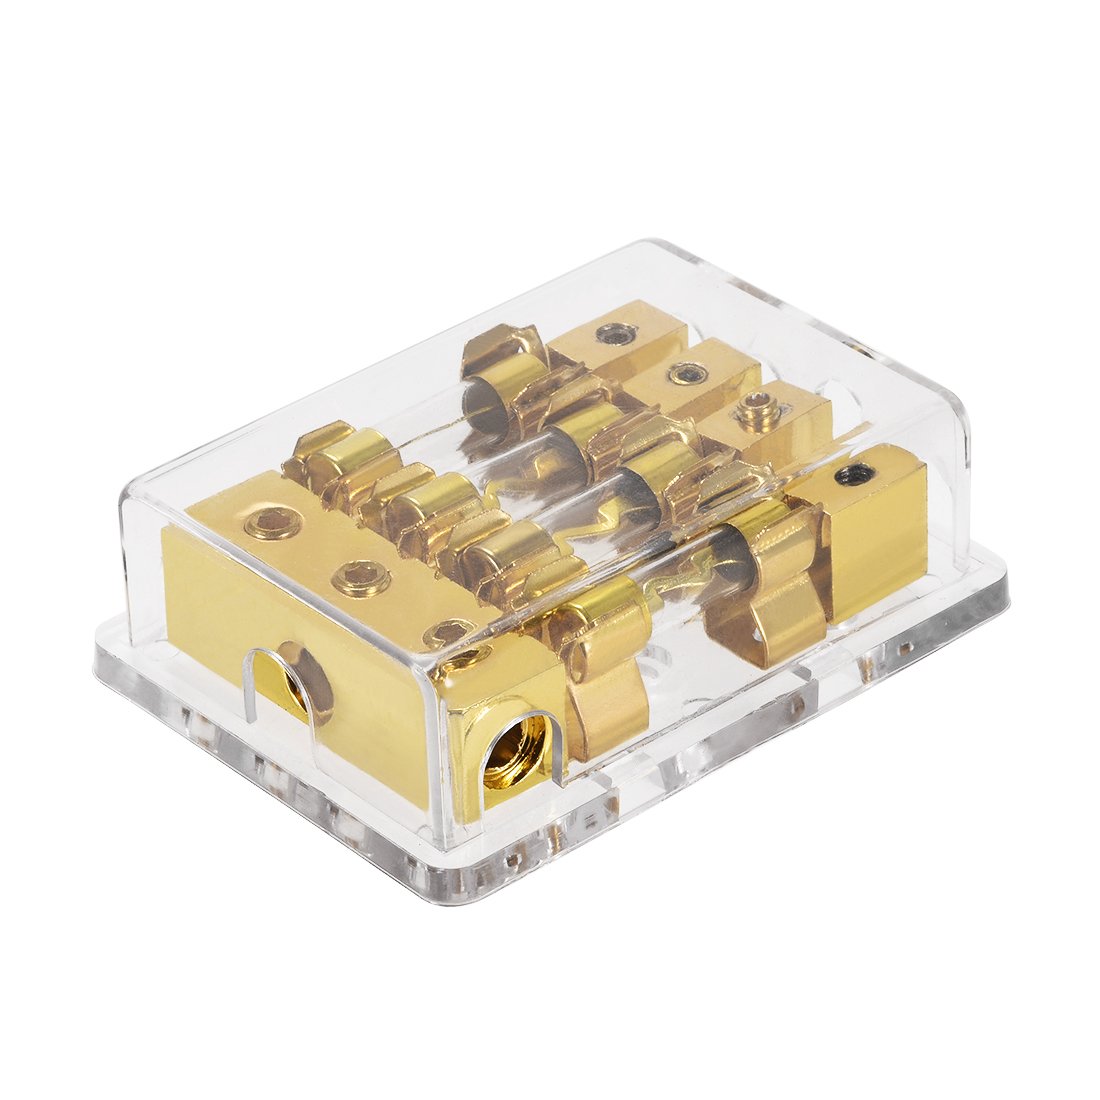 4/8 AWG Gauge AGU 1 in 4 Fuse Holder Distribution Block with 30A AGU Fuses